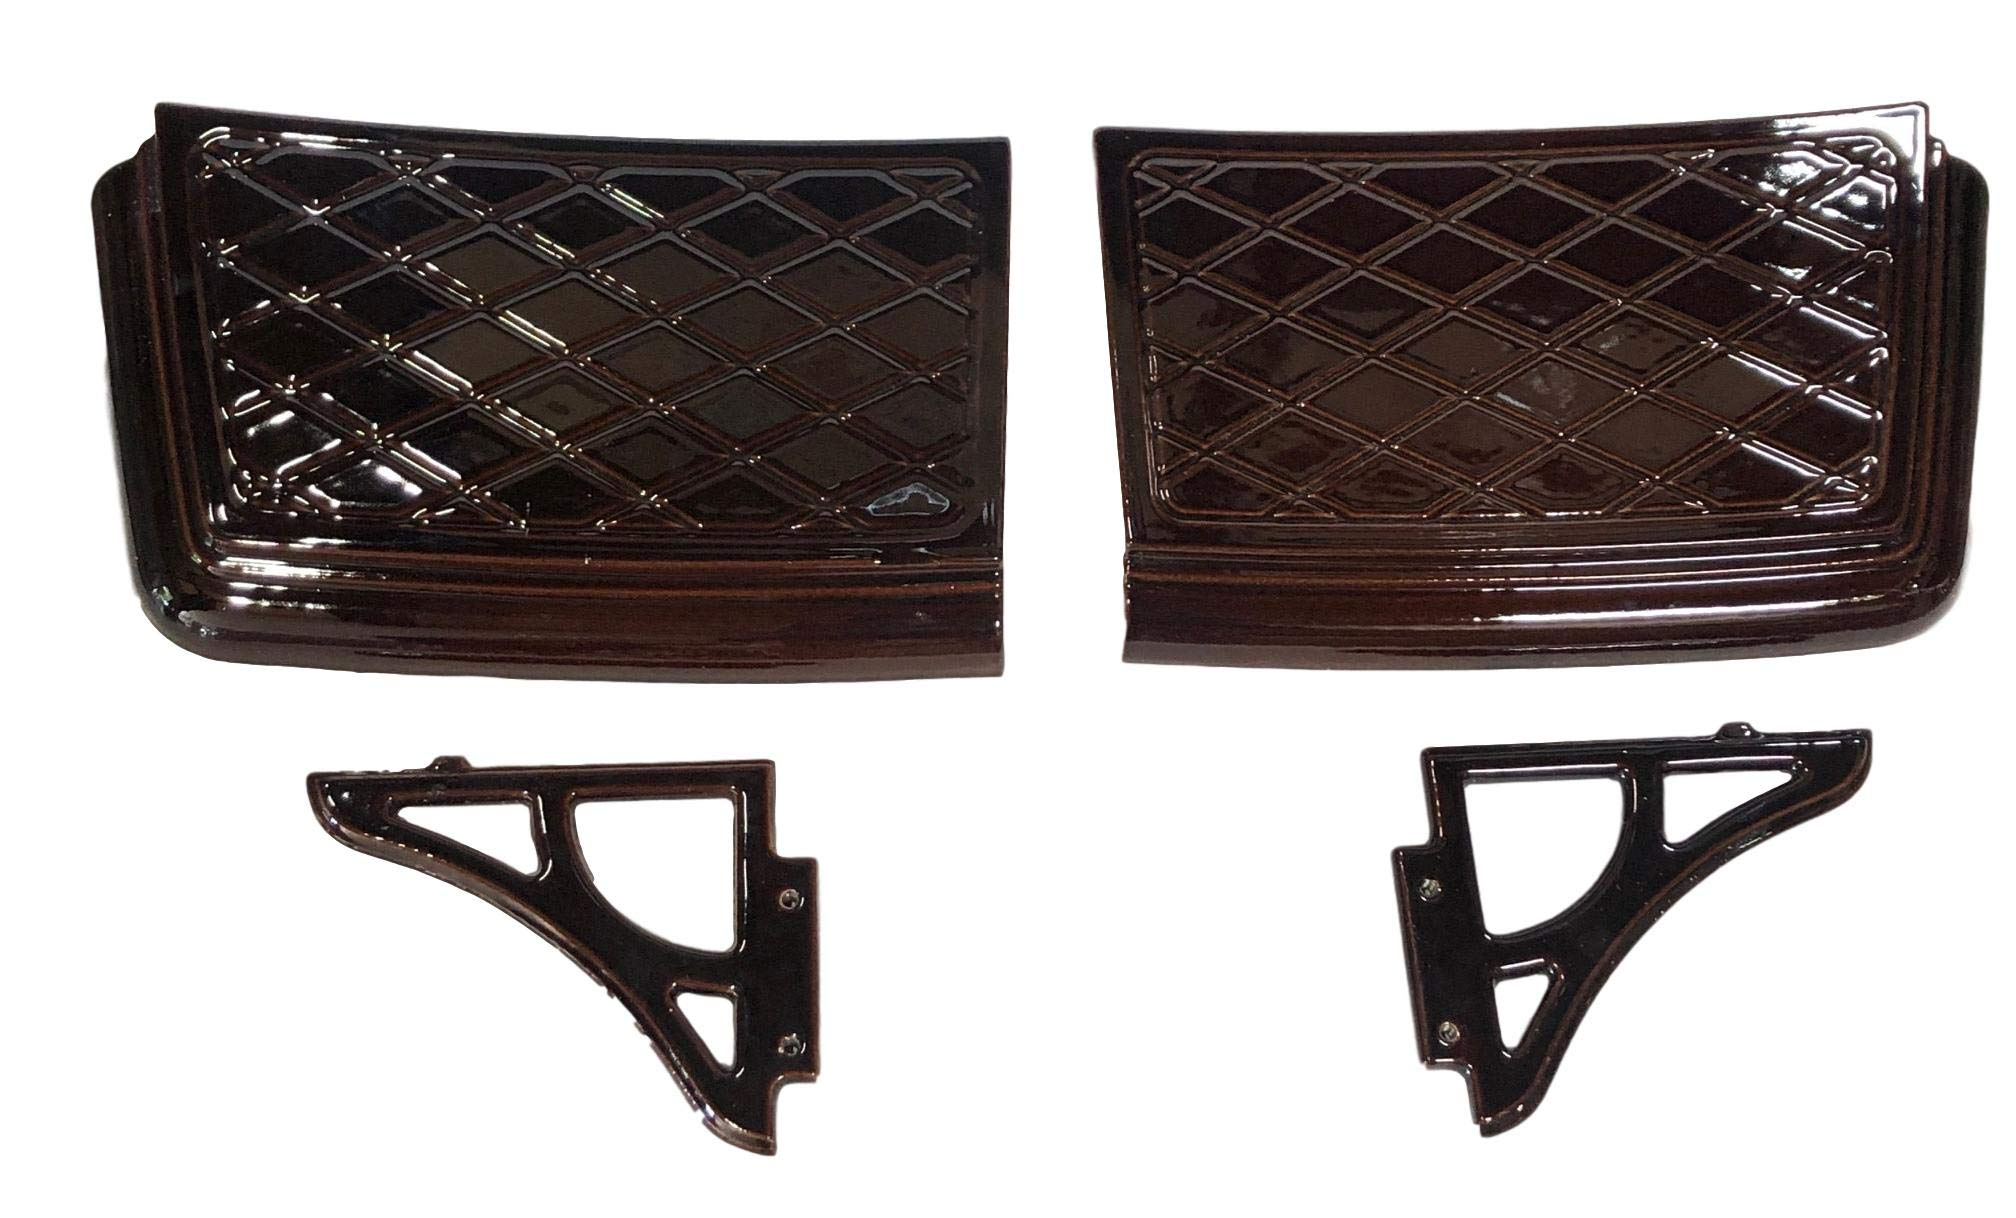 WOLF STEEL Napoleon Cast Side Shelves Porcelain Majolica Brown, GS-SSV-N Gas Stove by WOLF STEEL